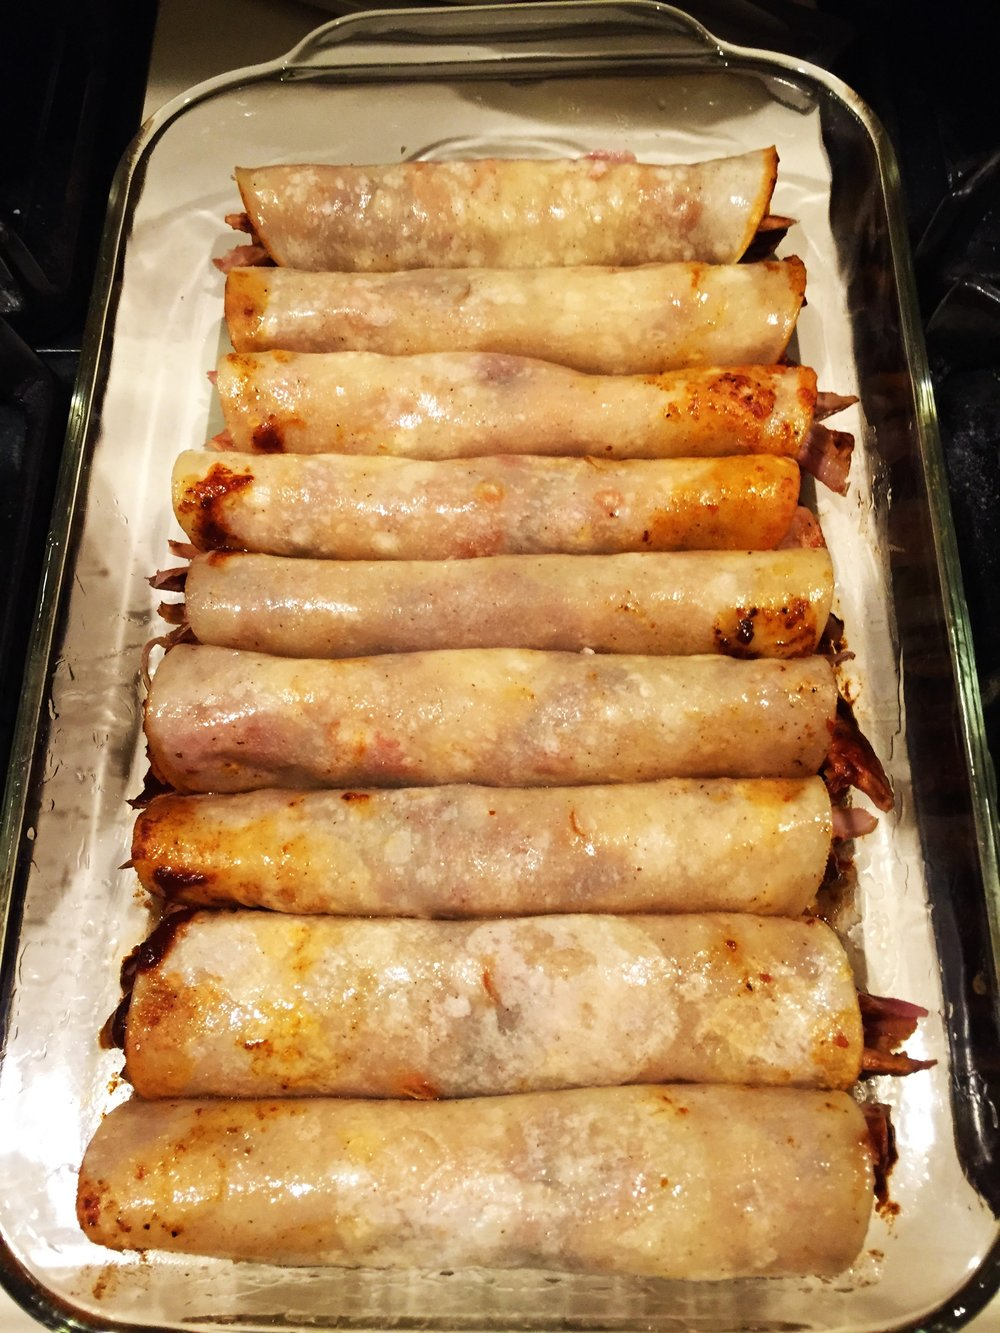 Enchiladas, all rolled up and ready for sauce and cheese.